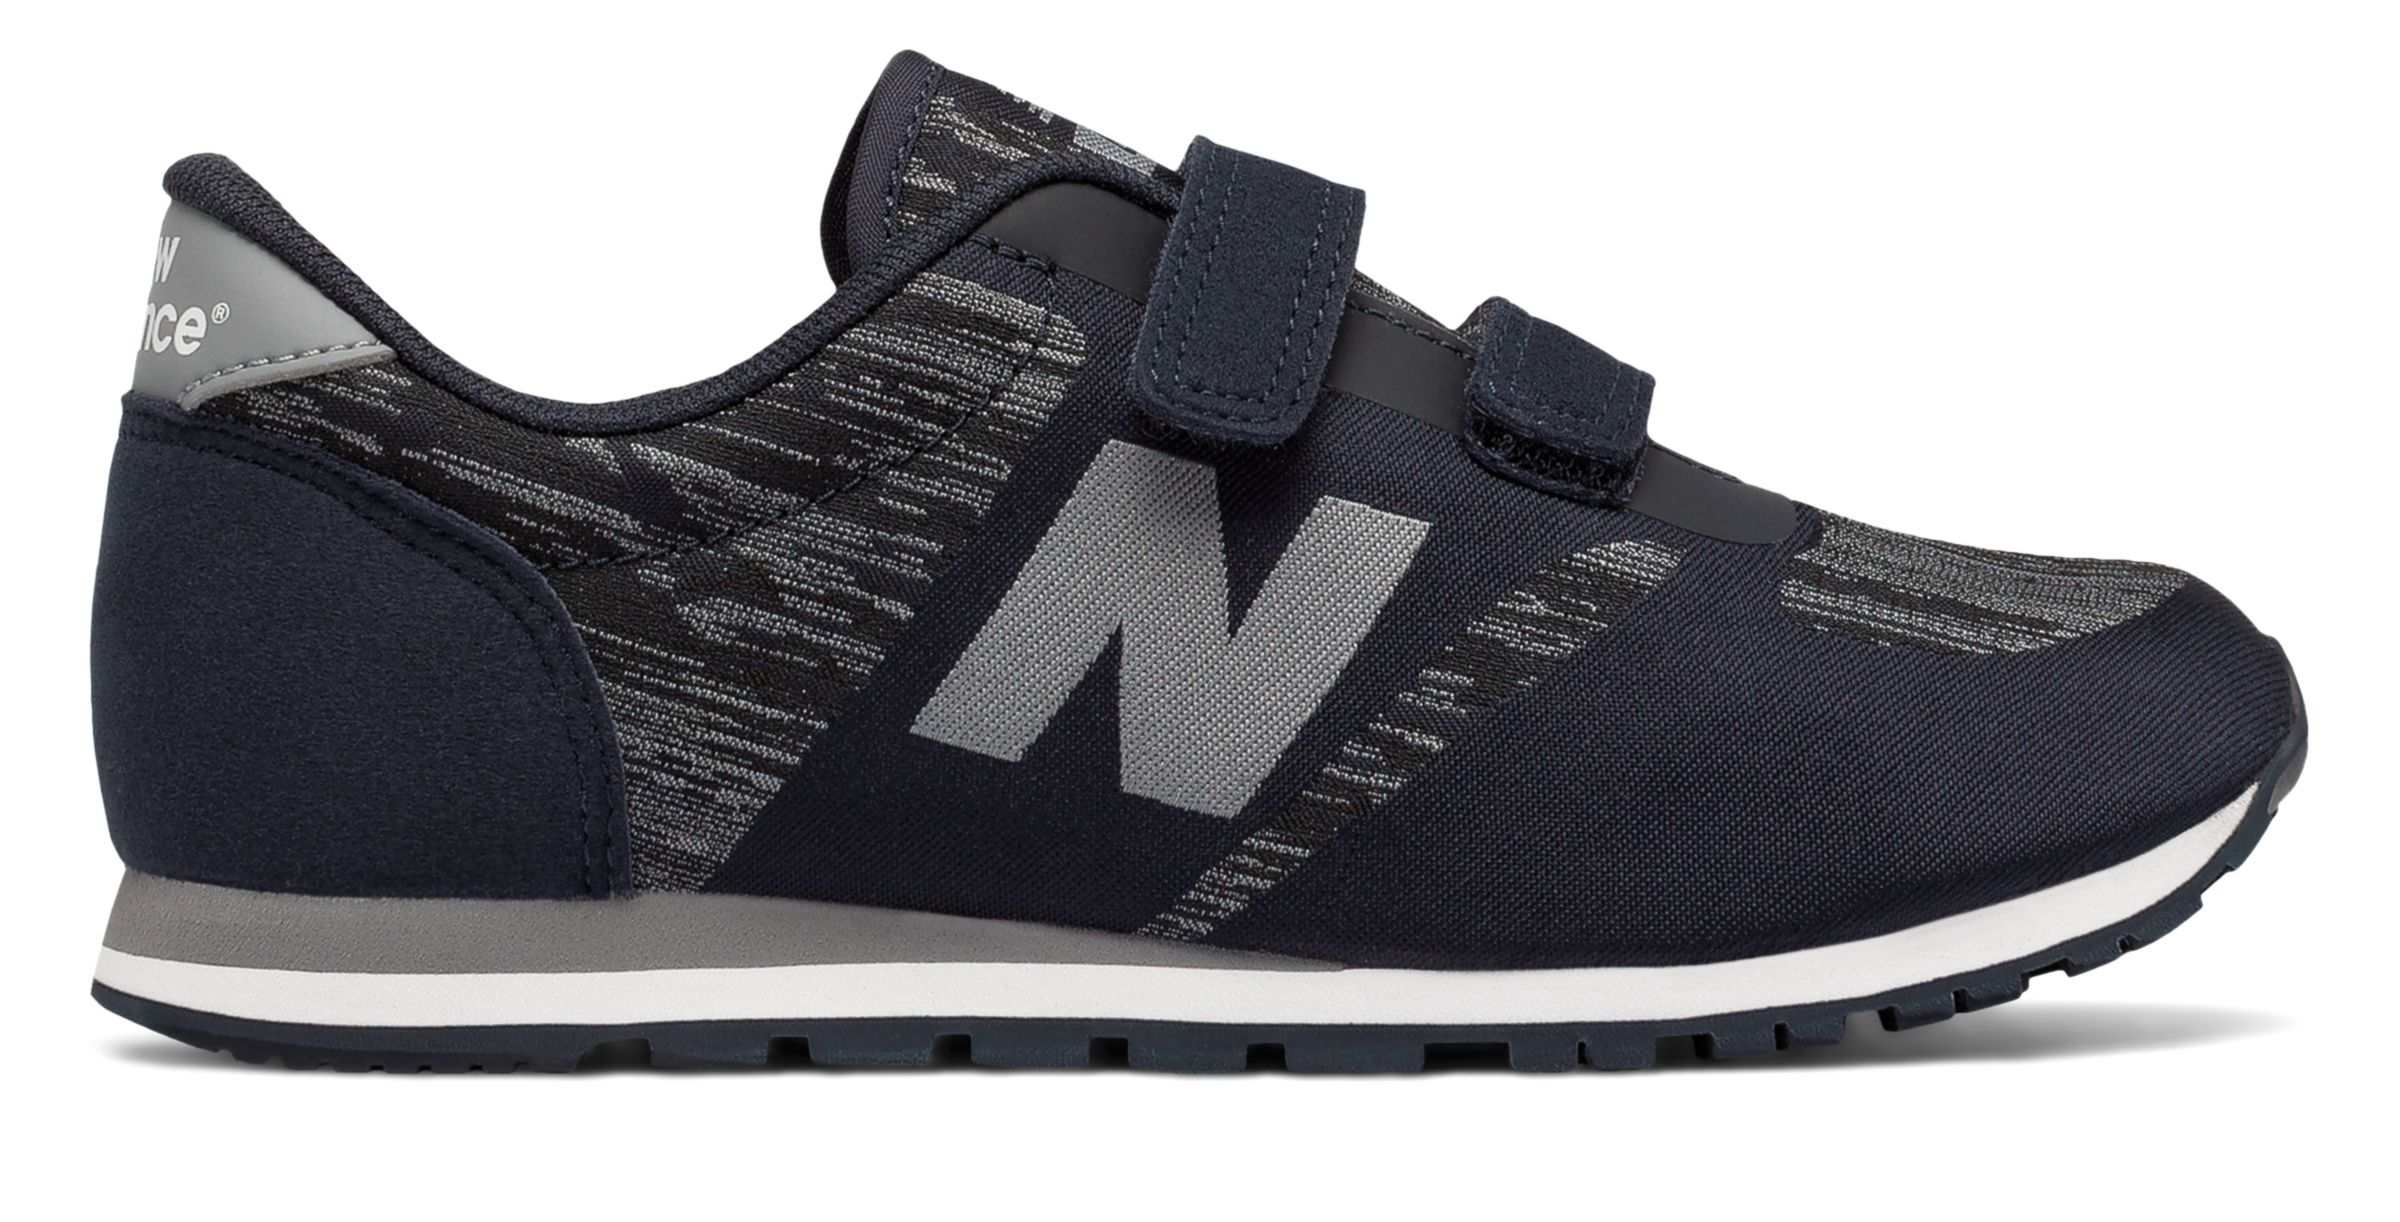 NB 420 Hook and Loop, Black with Grey